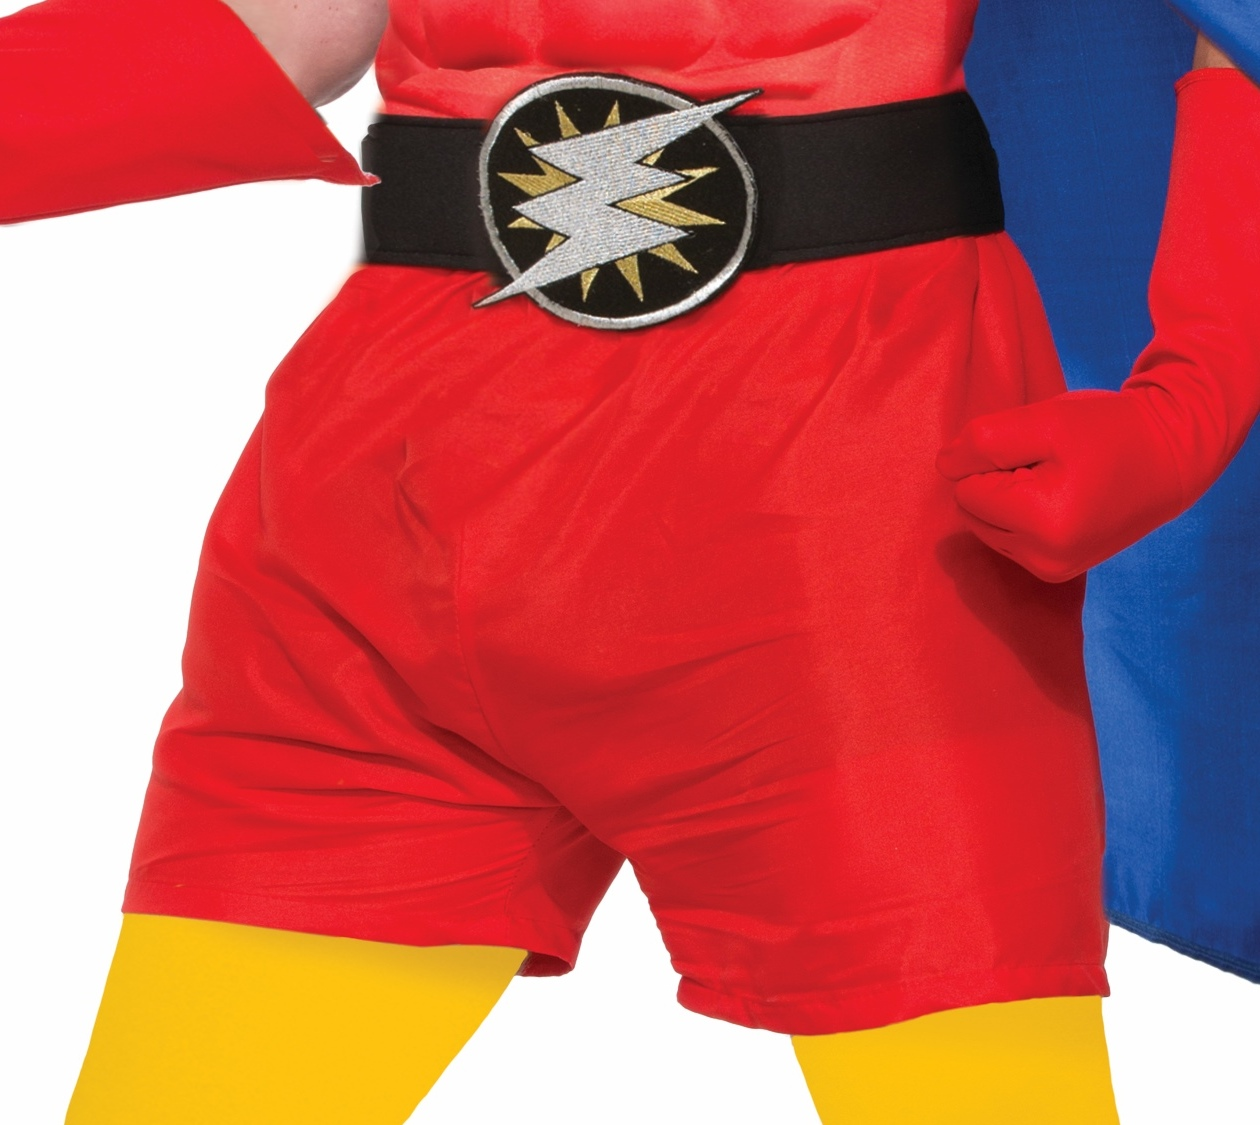 Create-Your-Own-Super-Hero-Adult-Costume-Accessory-Boxer-Shorts-Up-To-34-034-Waist thumbnail 9